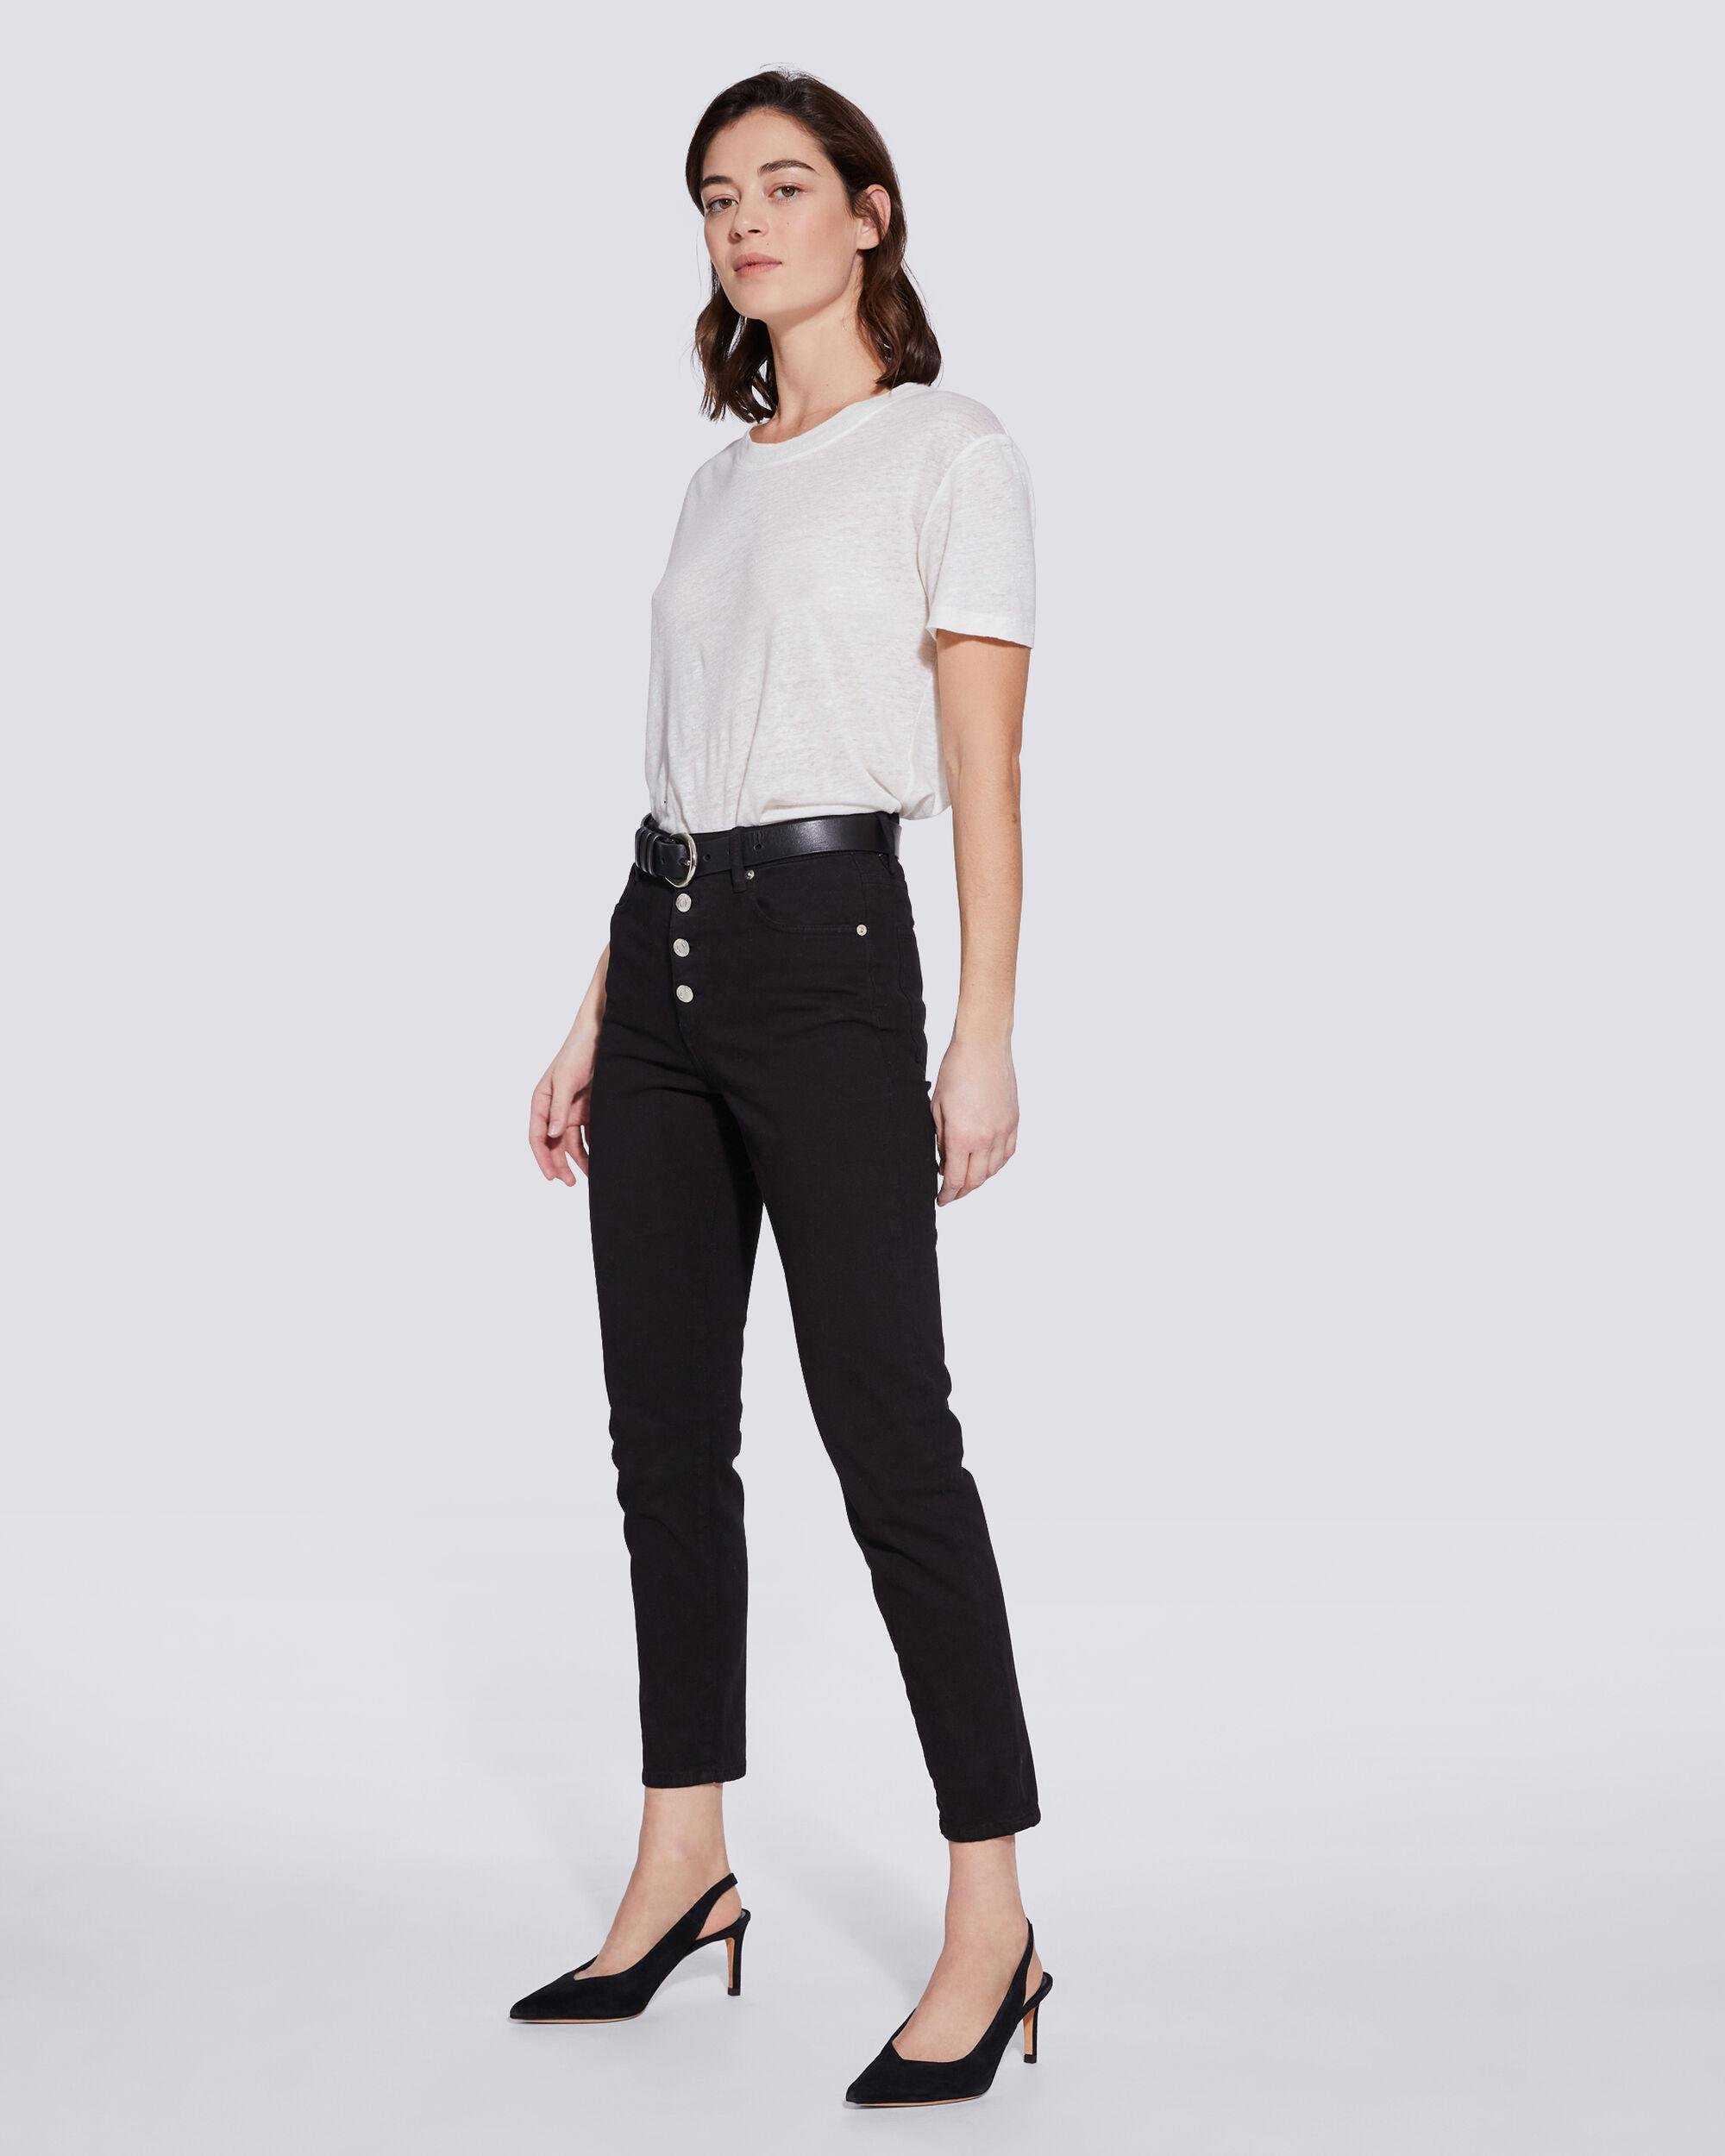 ESME HIGH RISE BUTTON FRONT CROPPED JEANS 1